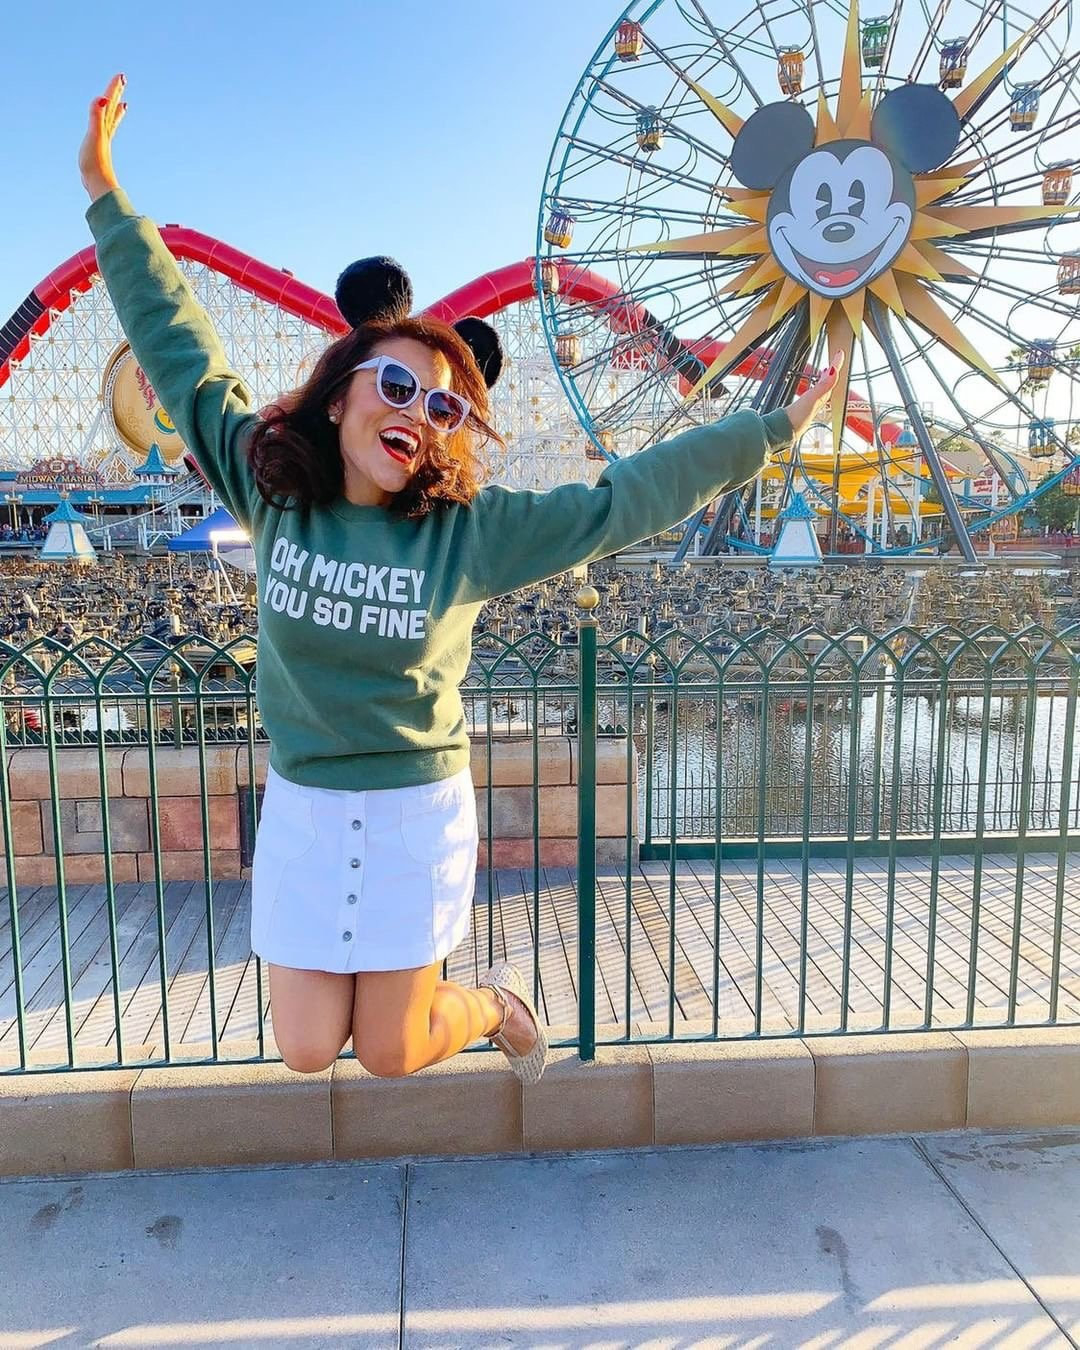 a model at disneyland jumping in their air wearing a green sweatshirt that says oh mickey you so fine on it